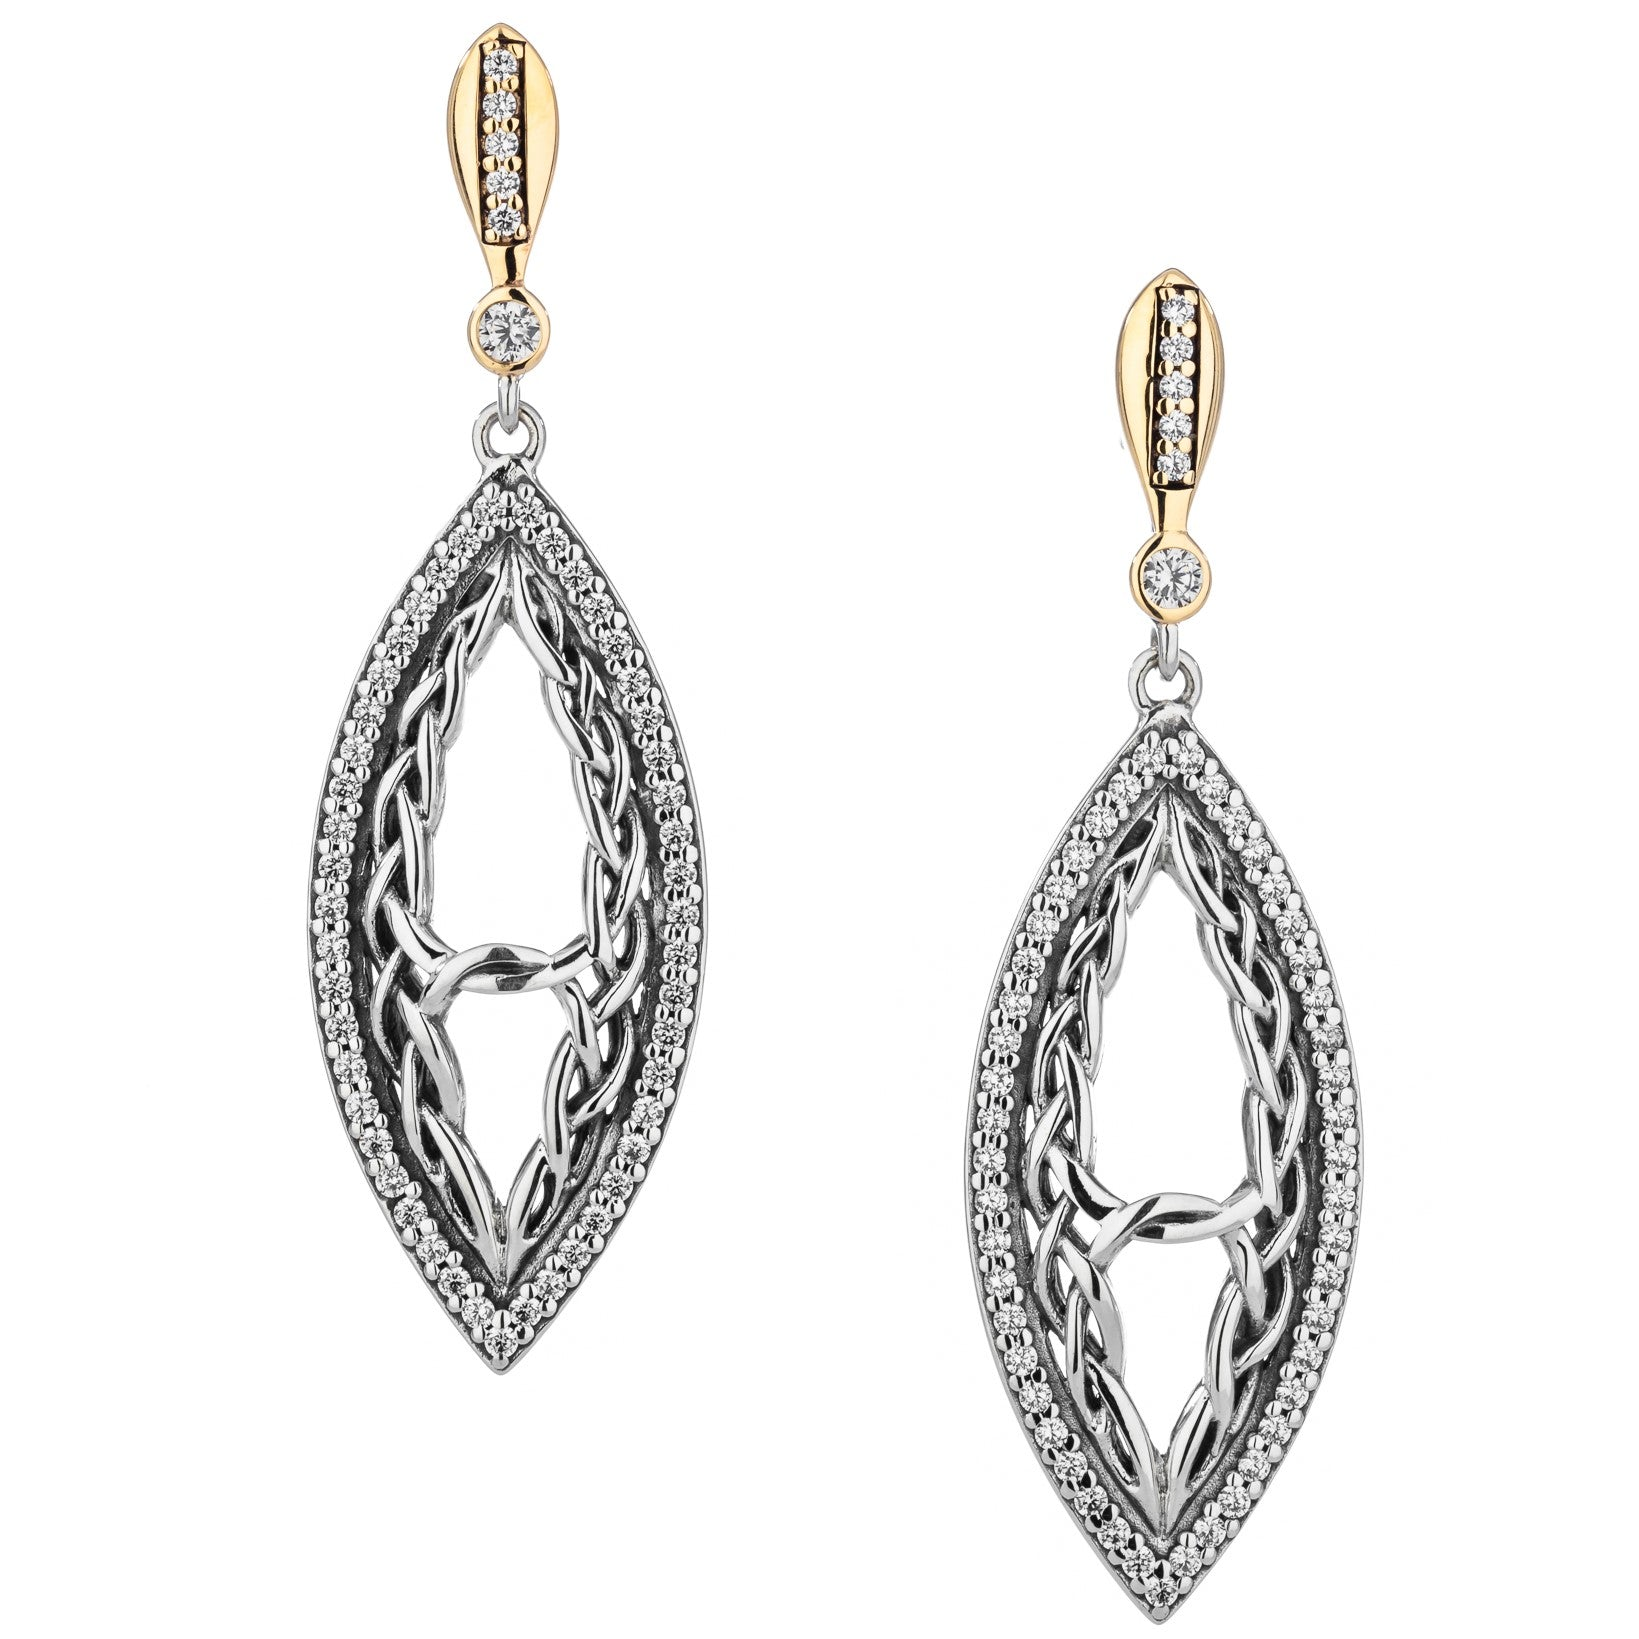 Intertwining Gateway Earrings